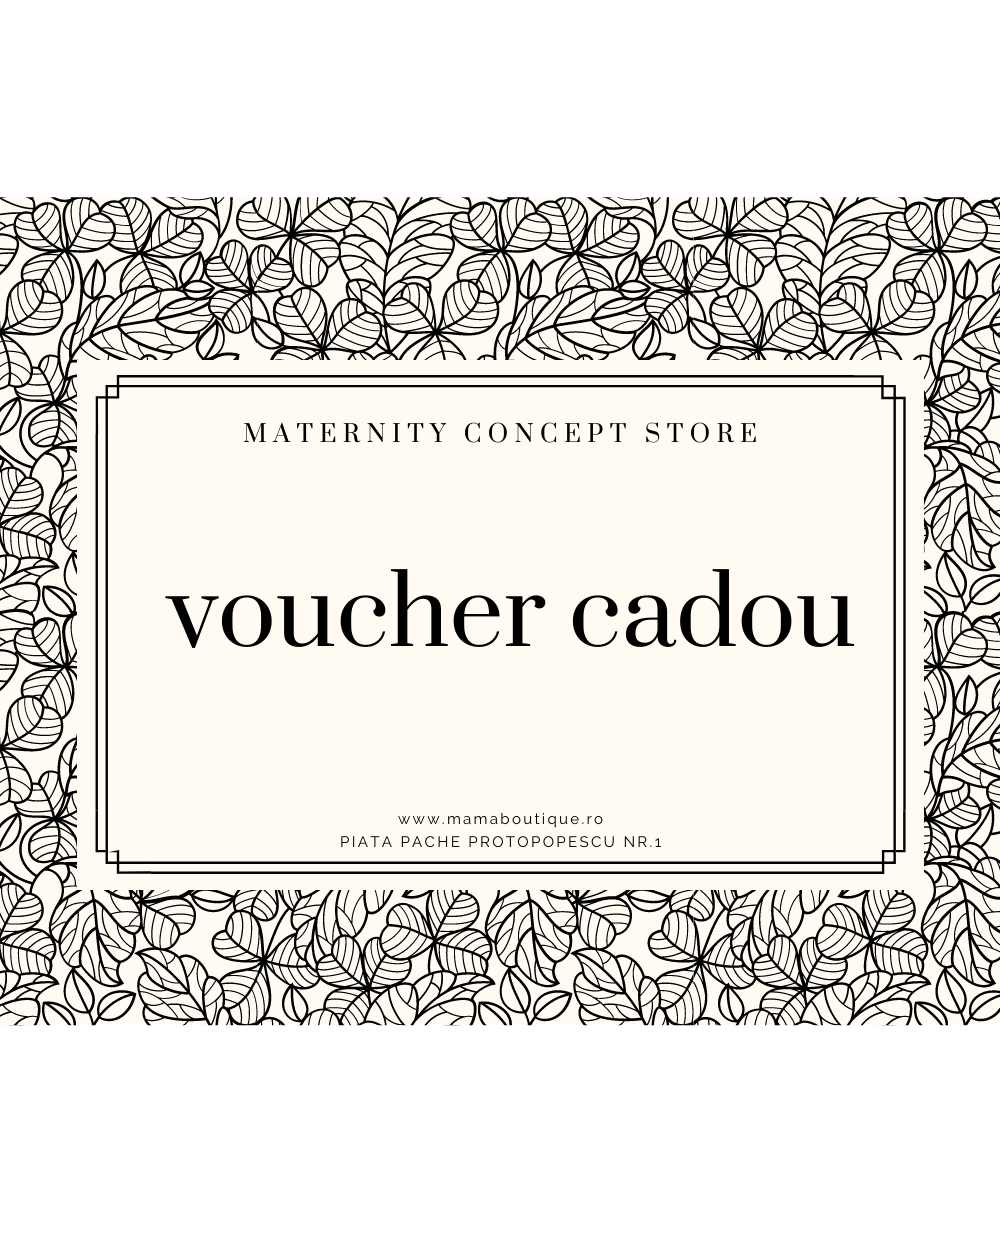 Voucher Cadou - Baby Love Mama Boutique - 1